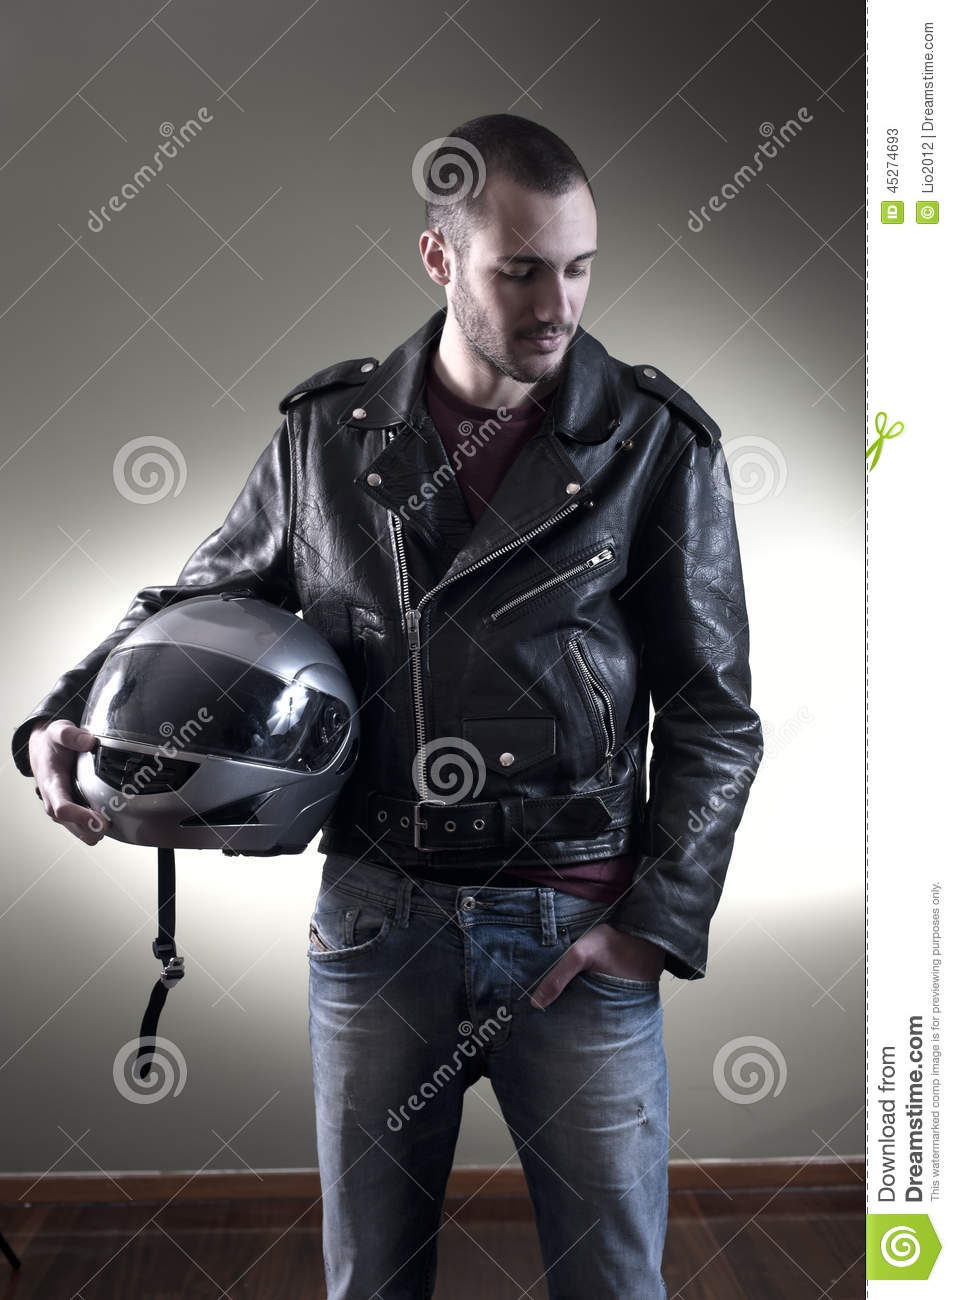 Mediumweight / Faux leather zip up biker jacket with hoodie / Zip up closure. Brown Leather Jacket Men for Bikers - Distressed Lambskin Waxed Motorcycle Leather Jacket. by fjackets. $ $ 00 Prime. FREE Shipping on eligible orders. Some sizes/colors are Prime eligible. out of 5 stars